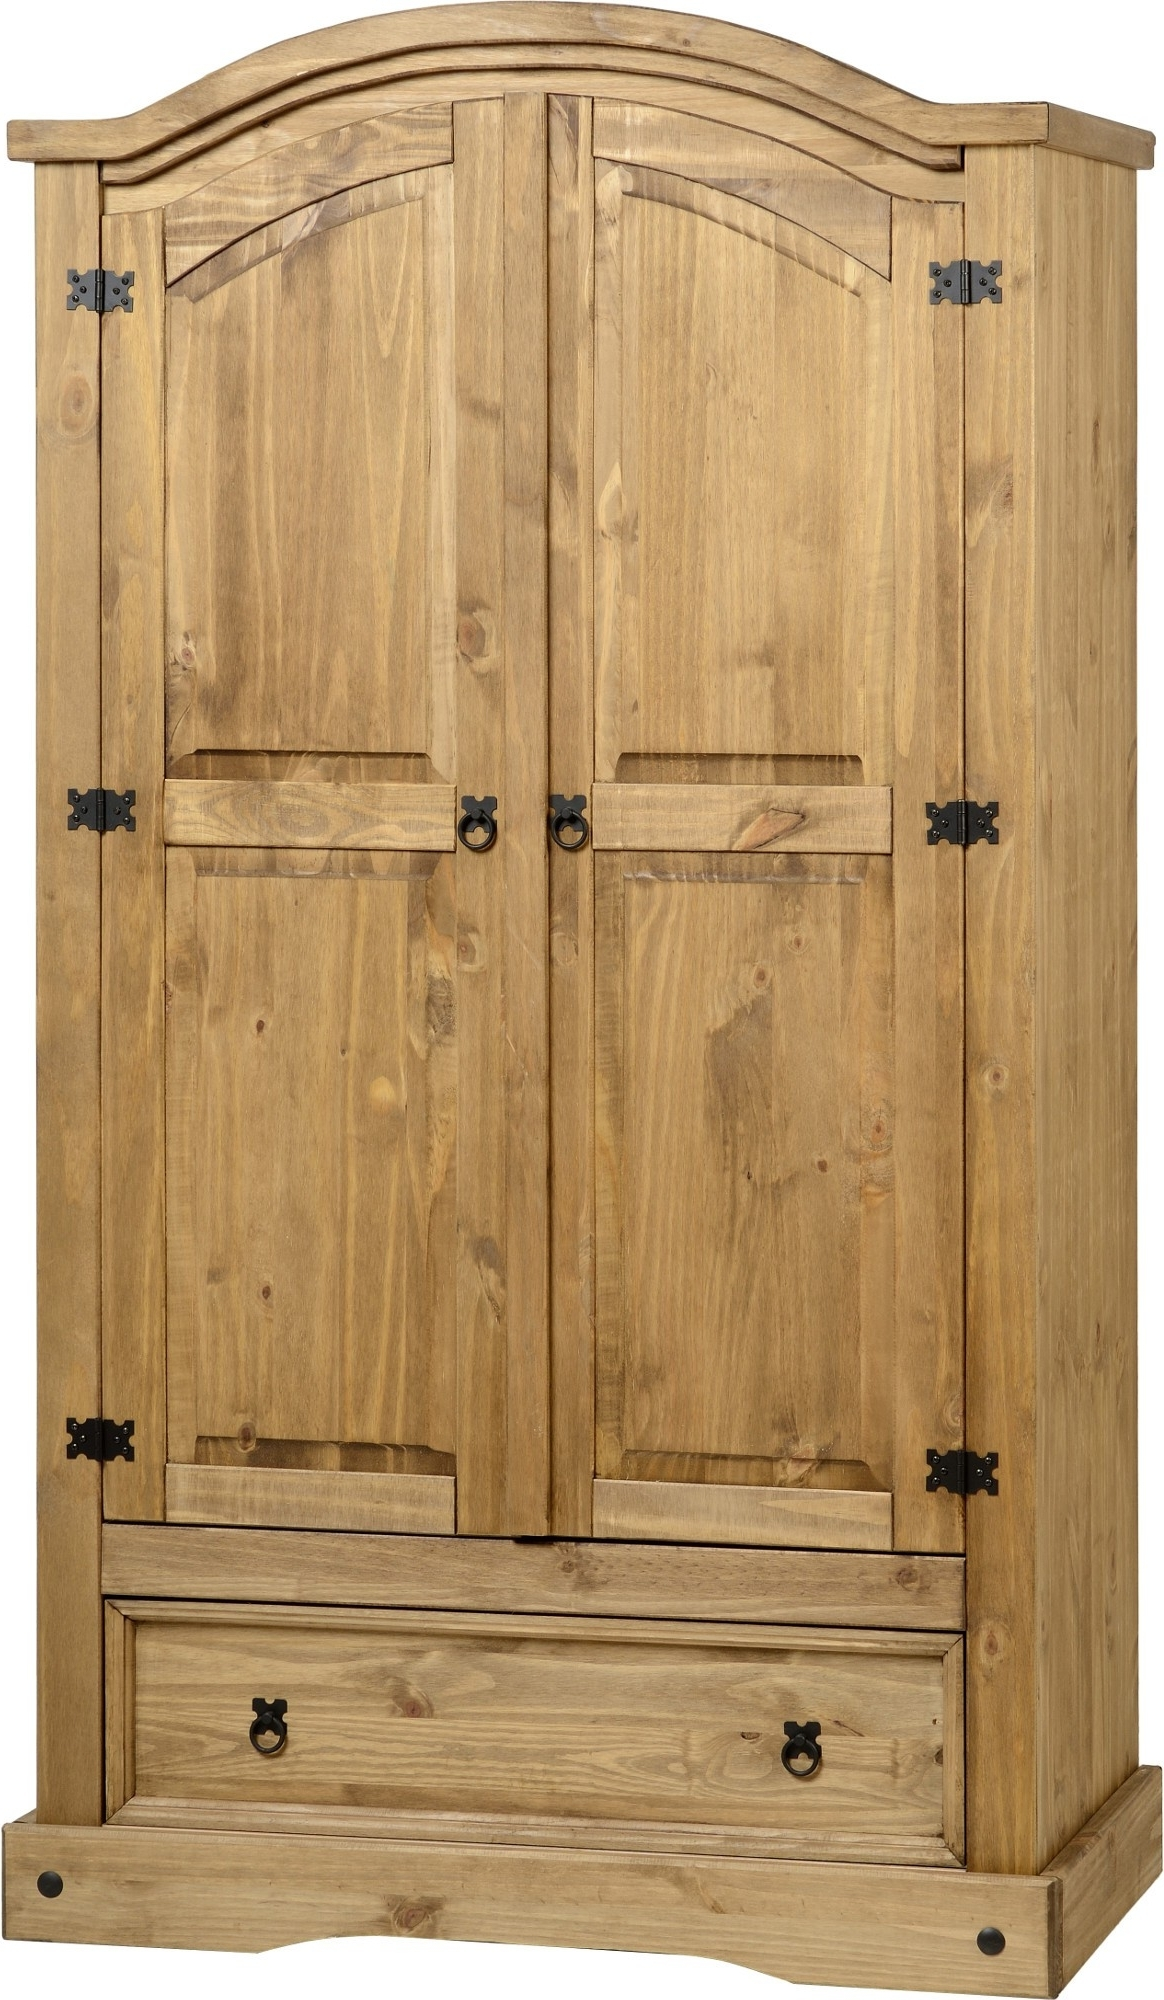 Pine Wardrobes With Drawers In Latest Corona Pine 2 Door Wardrobe With Drawer – Default Store View (View 8 of 15)